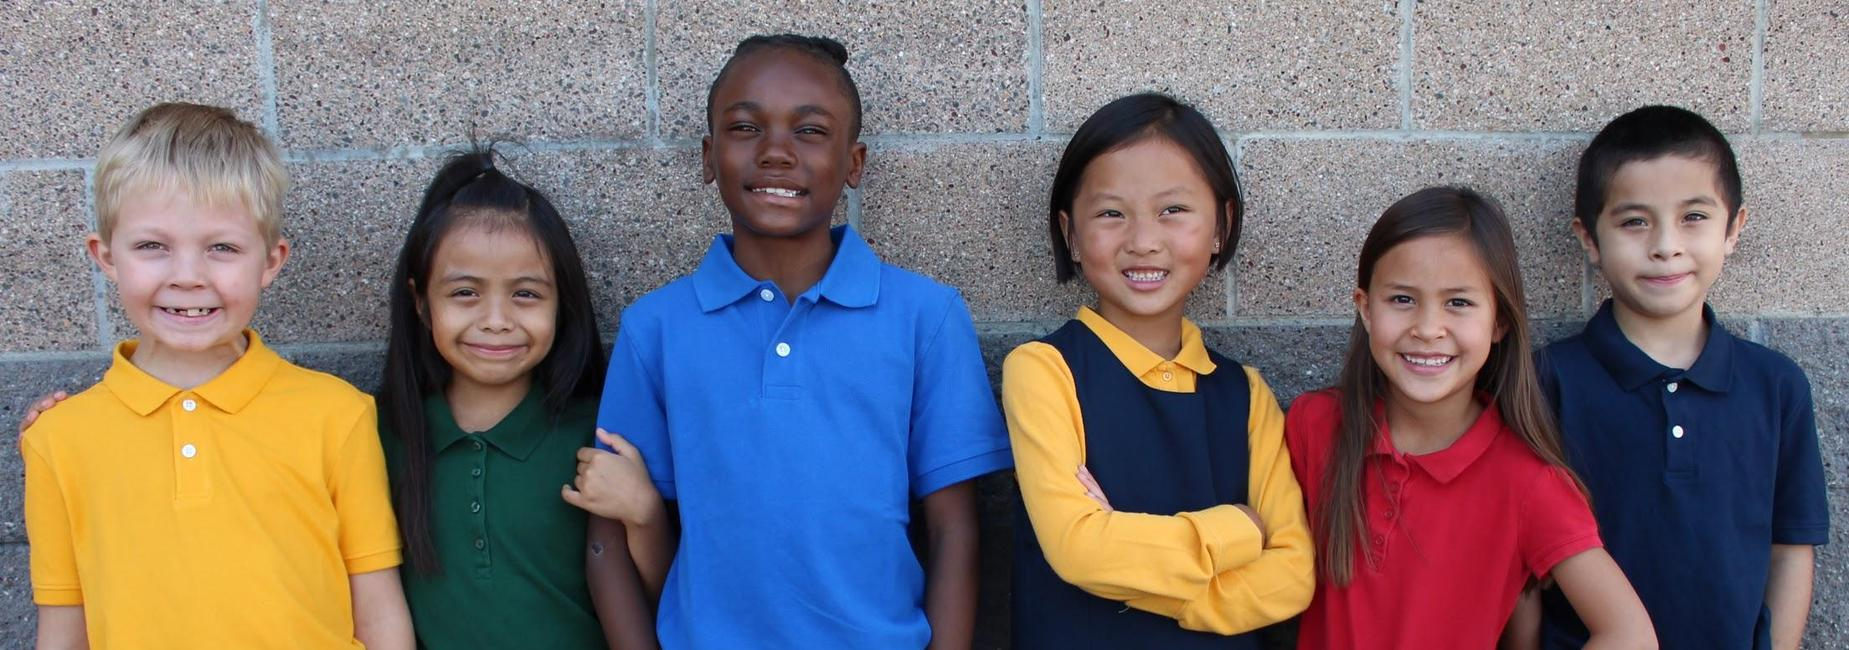 6 CILA students in different uniform shirts smile for the camera